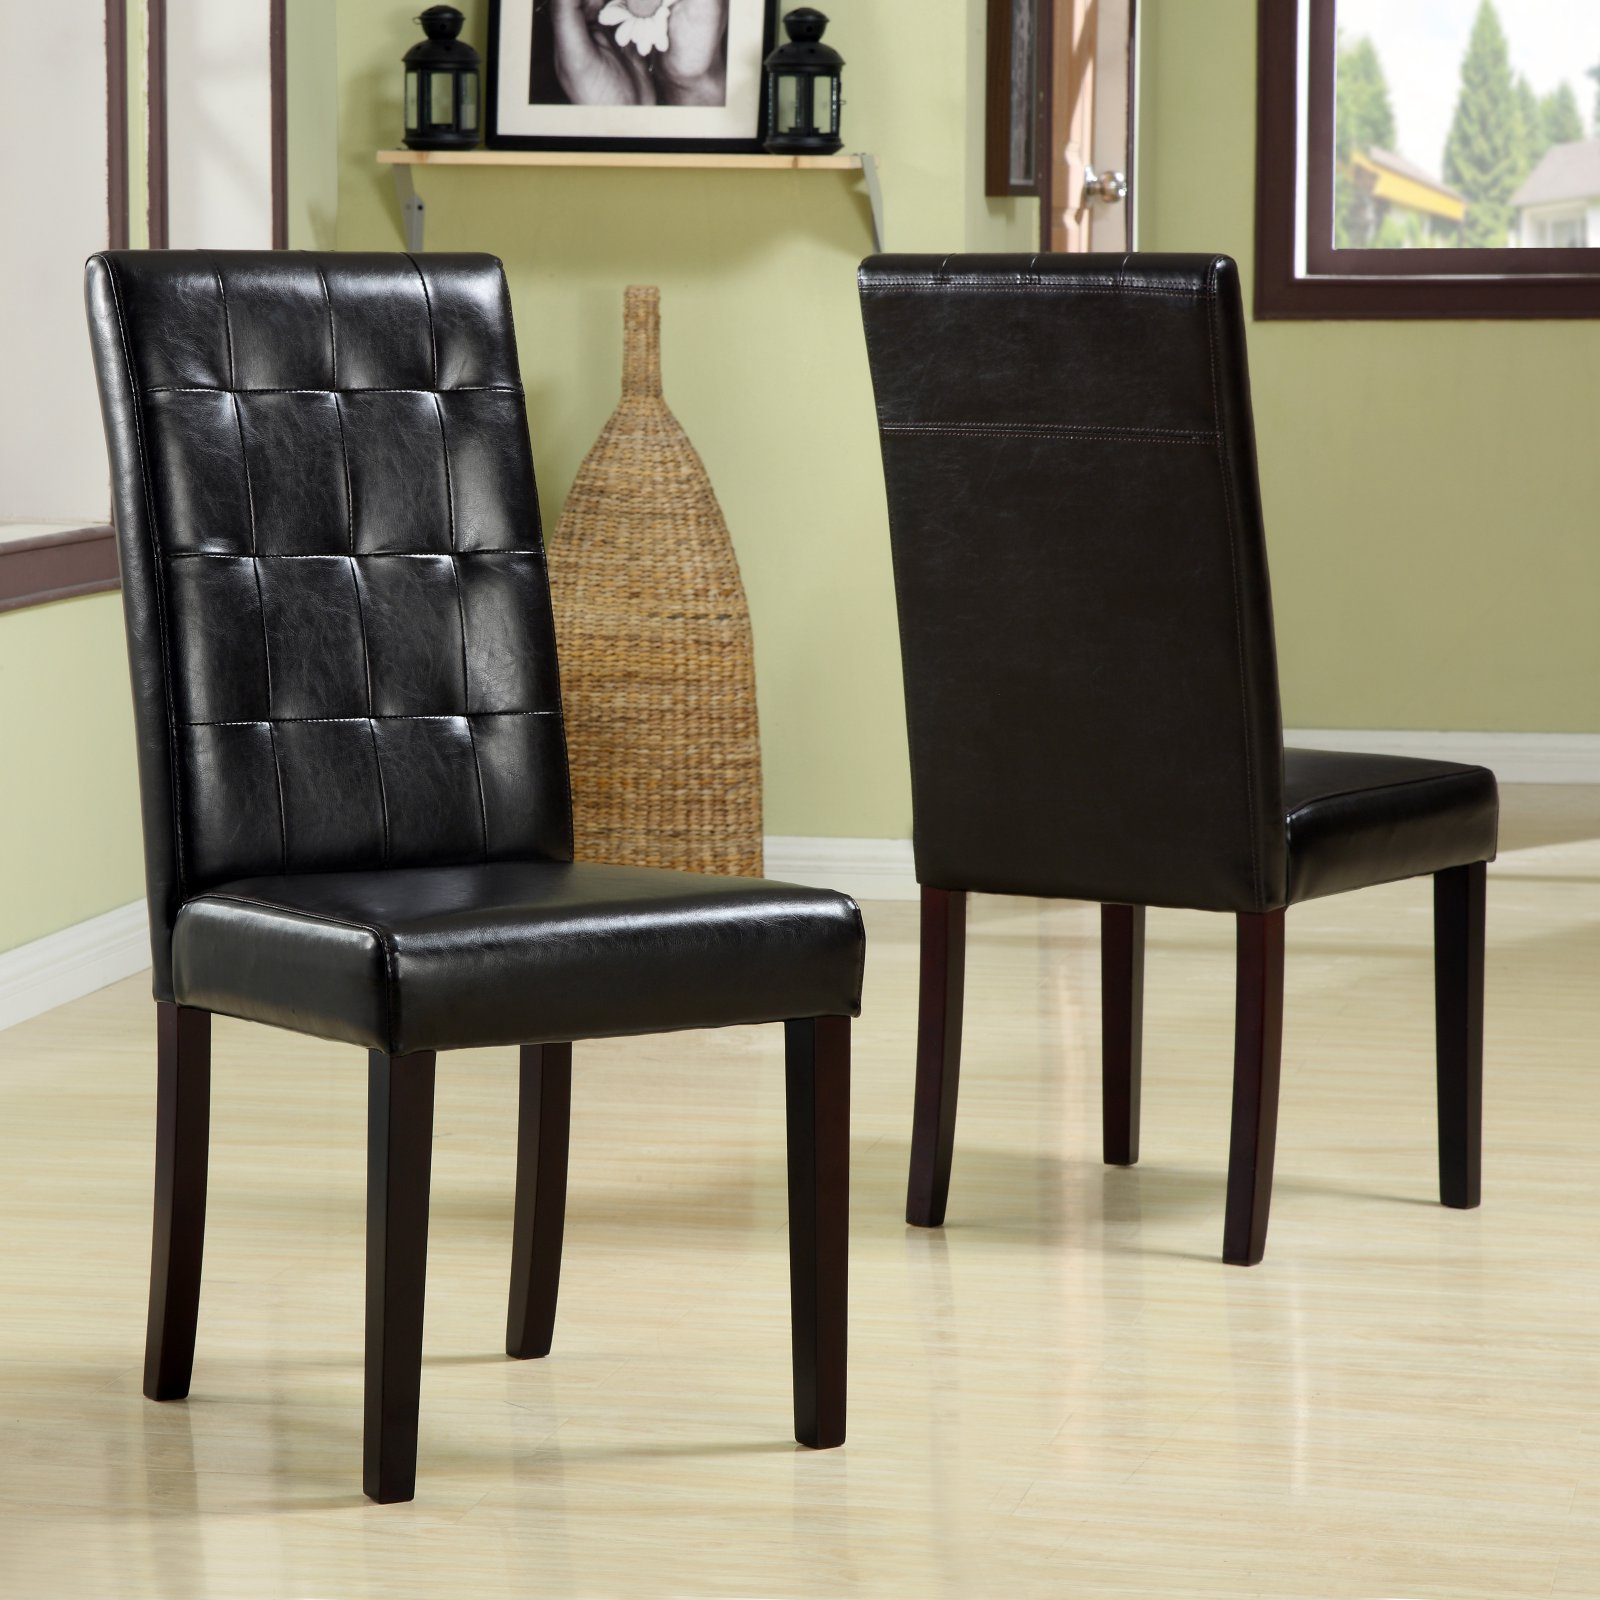 Urban Seating Tufted Chocolate Leatherette Parsons Chairs - Set of 2